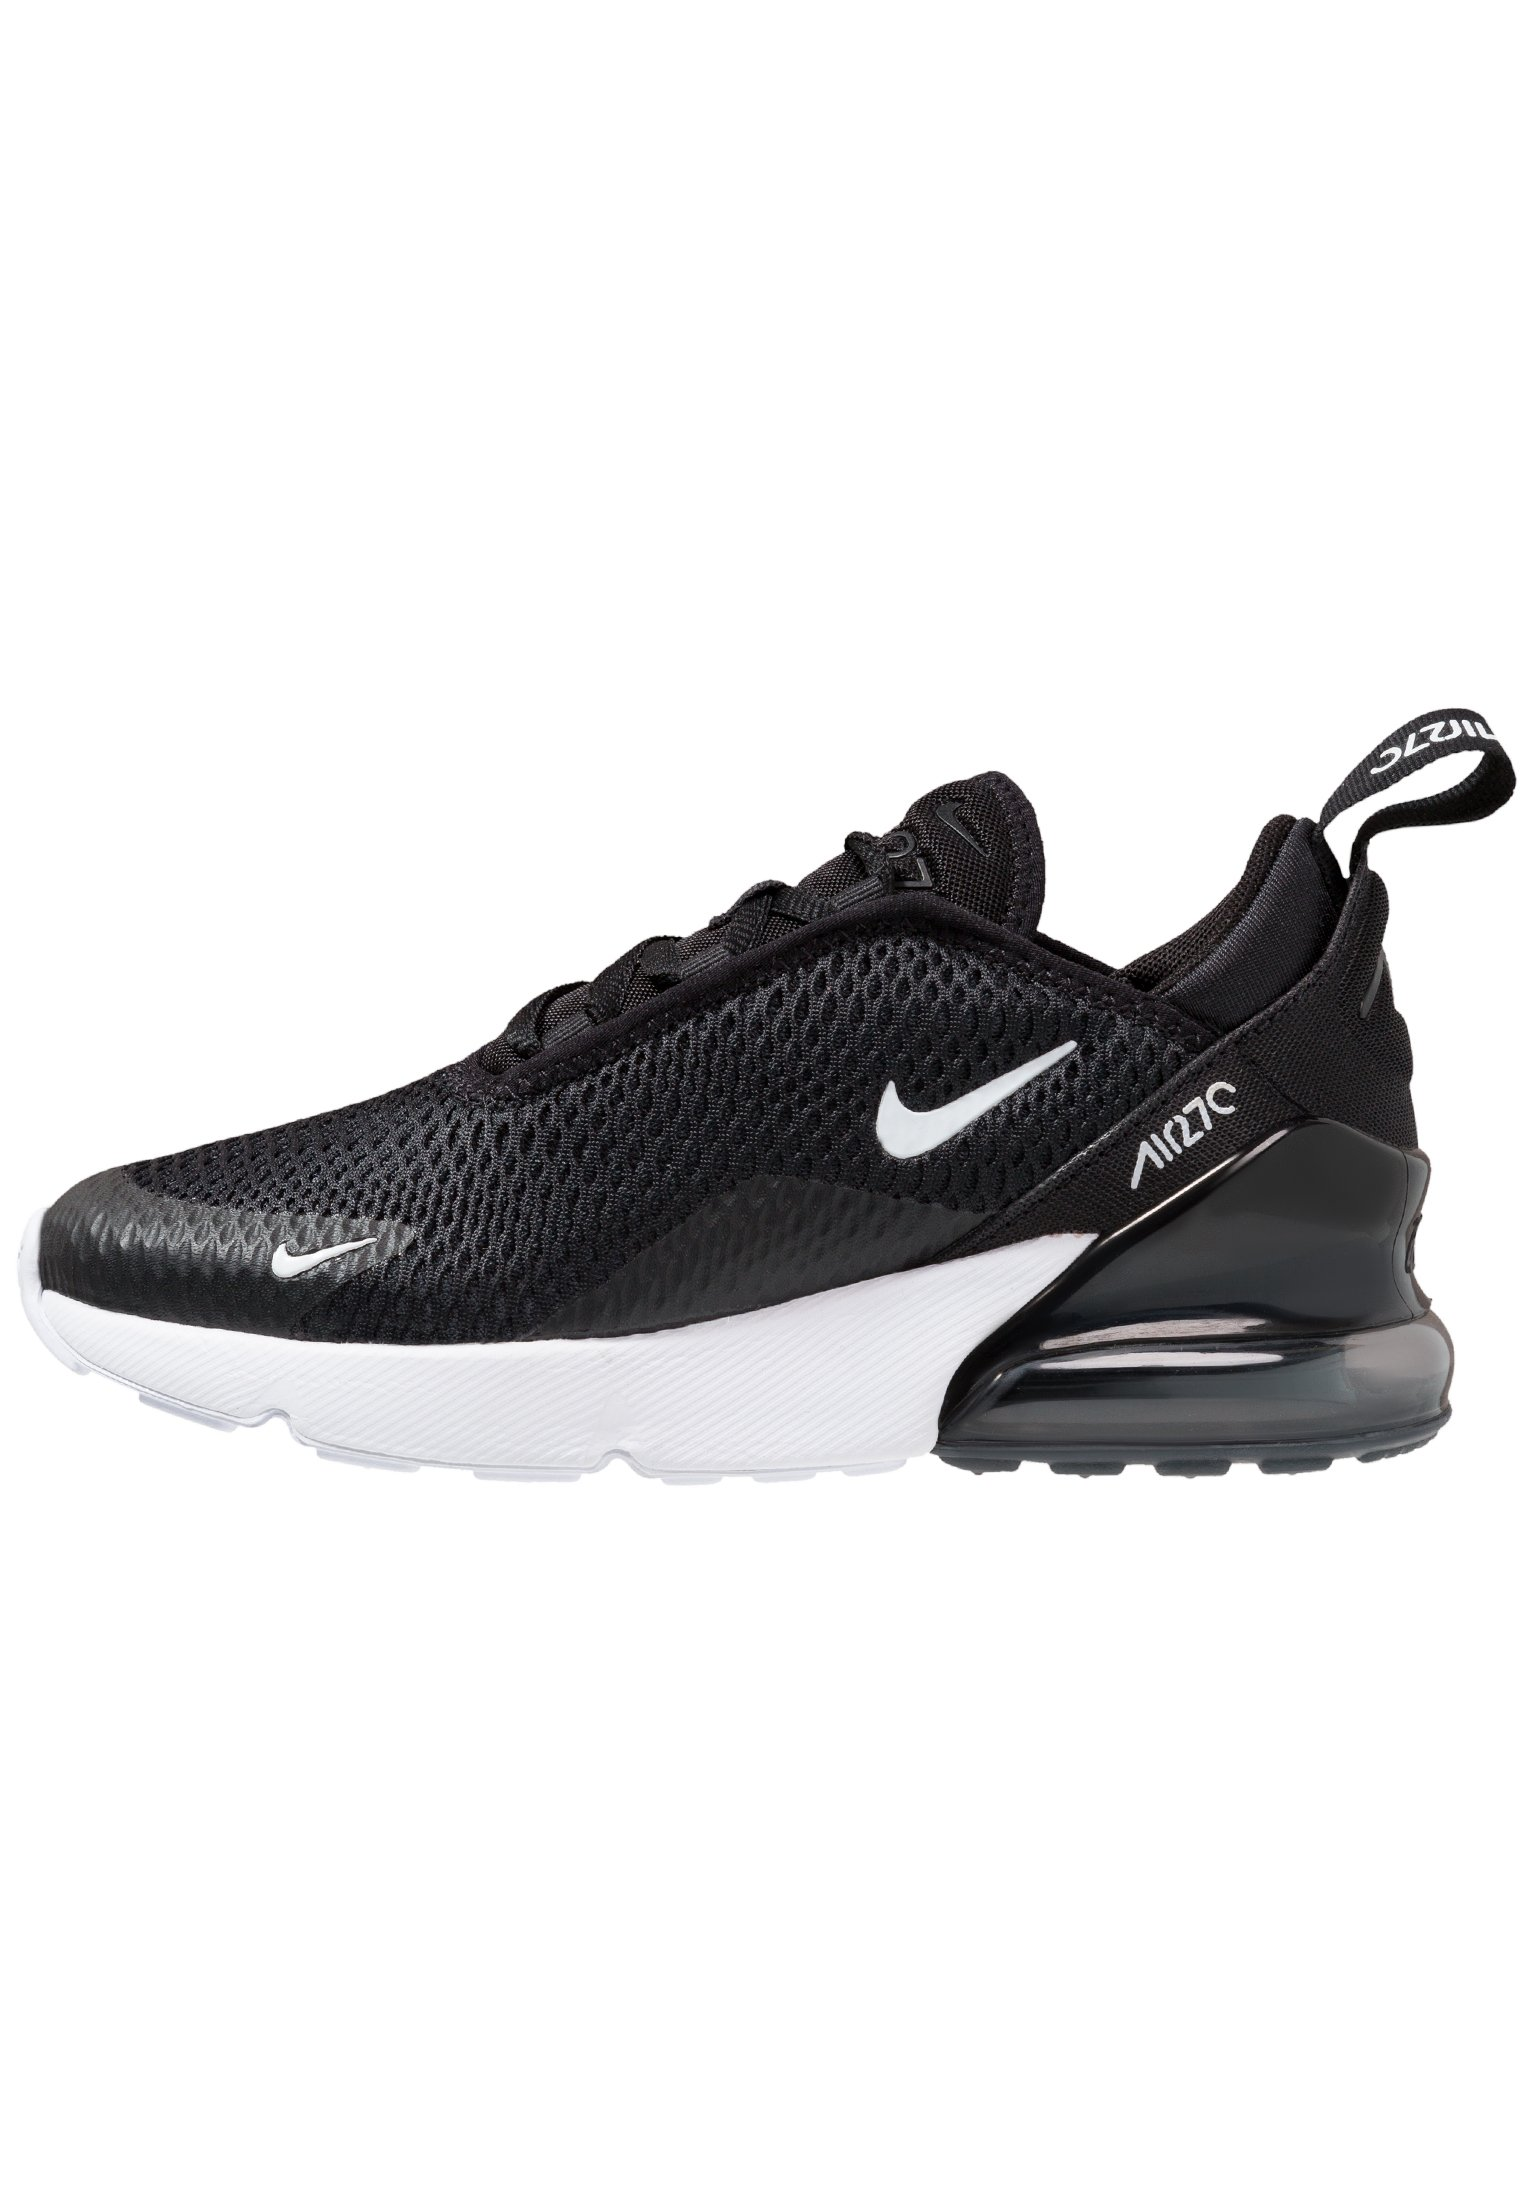 AIR MAX 270 Sneakers laag blackanthracitewhite